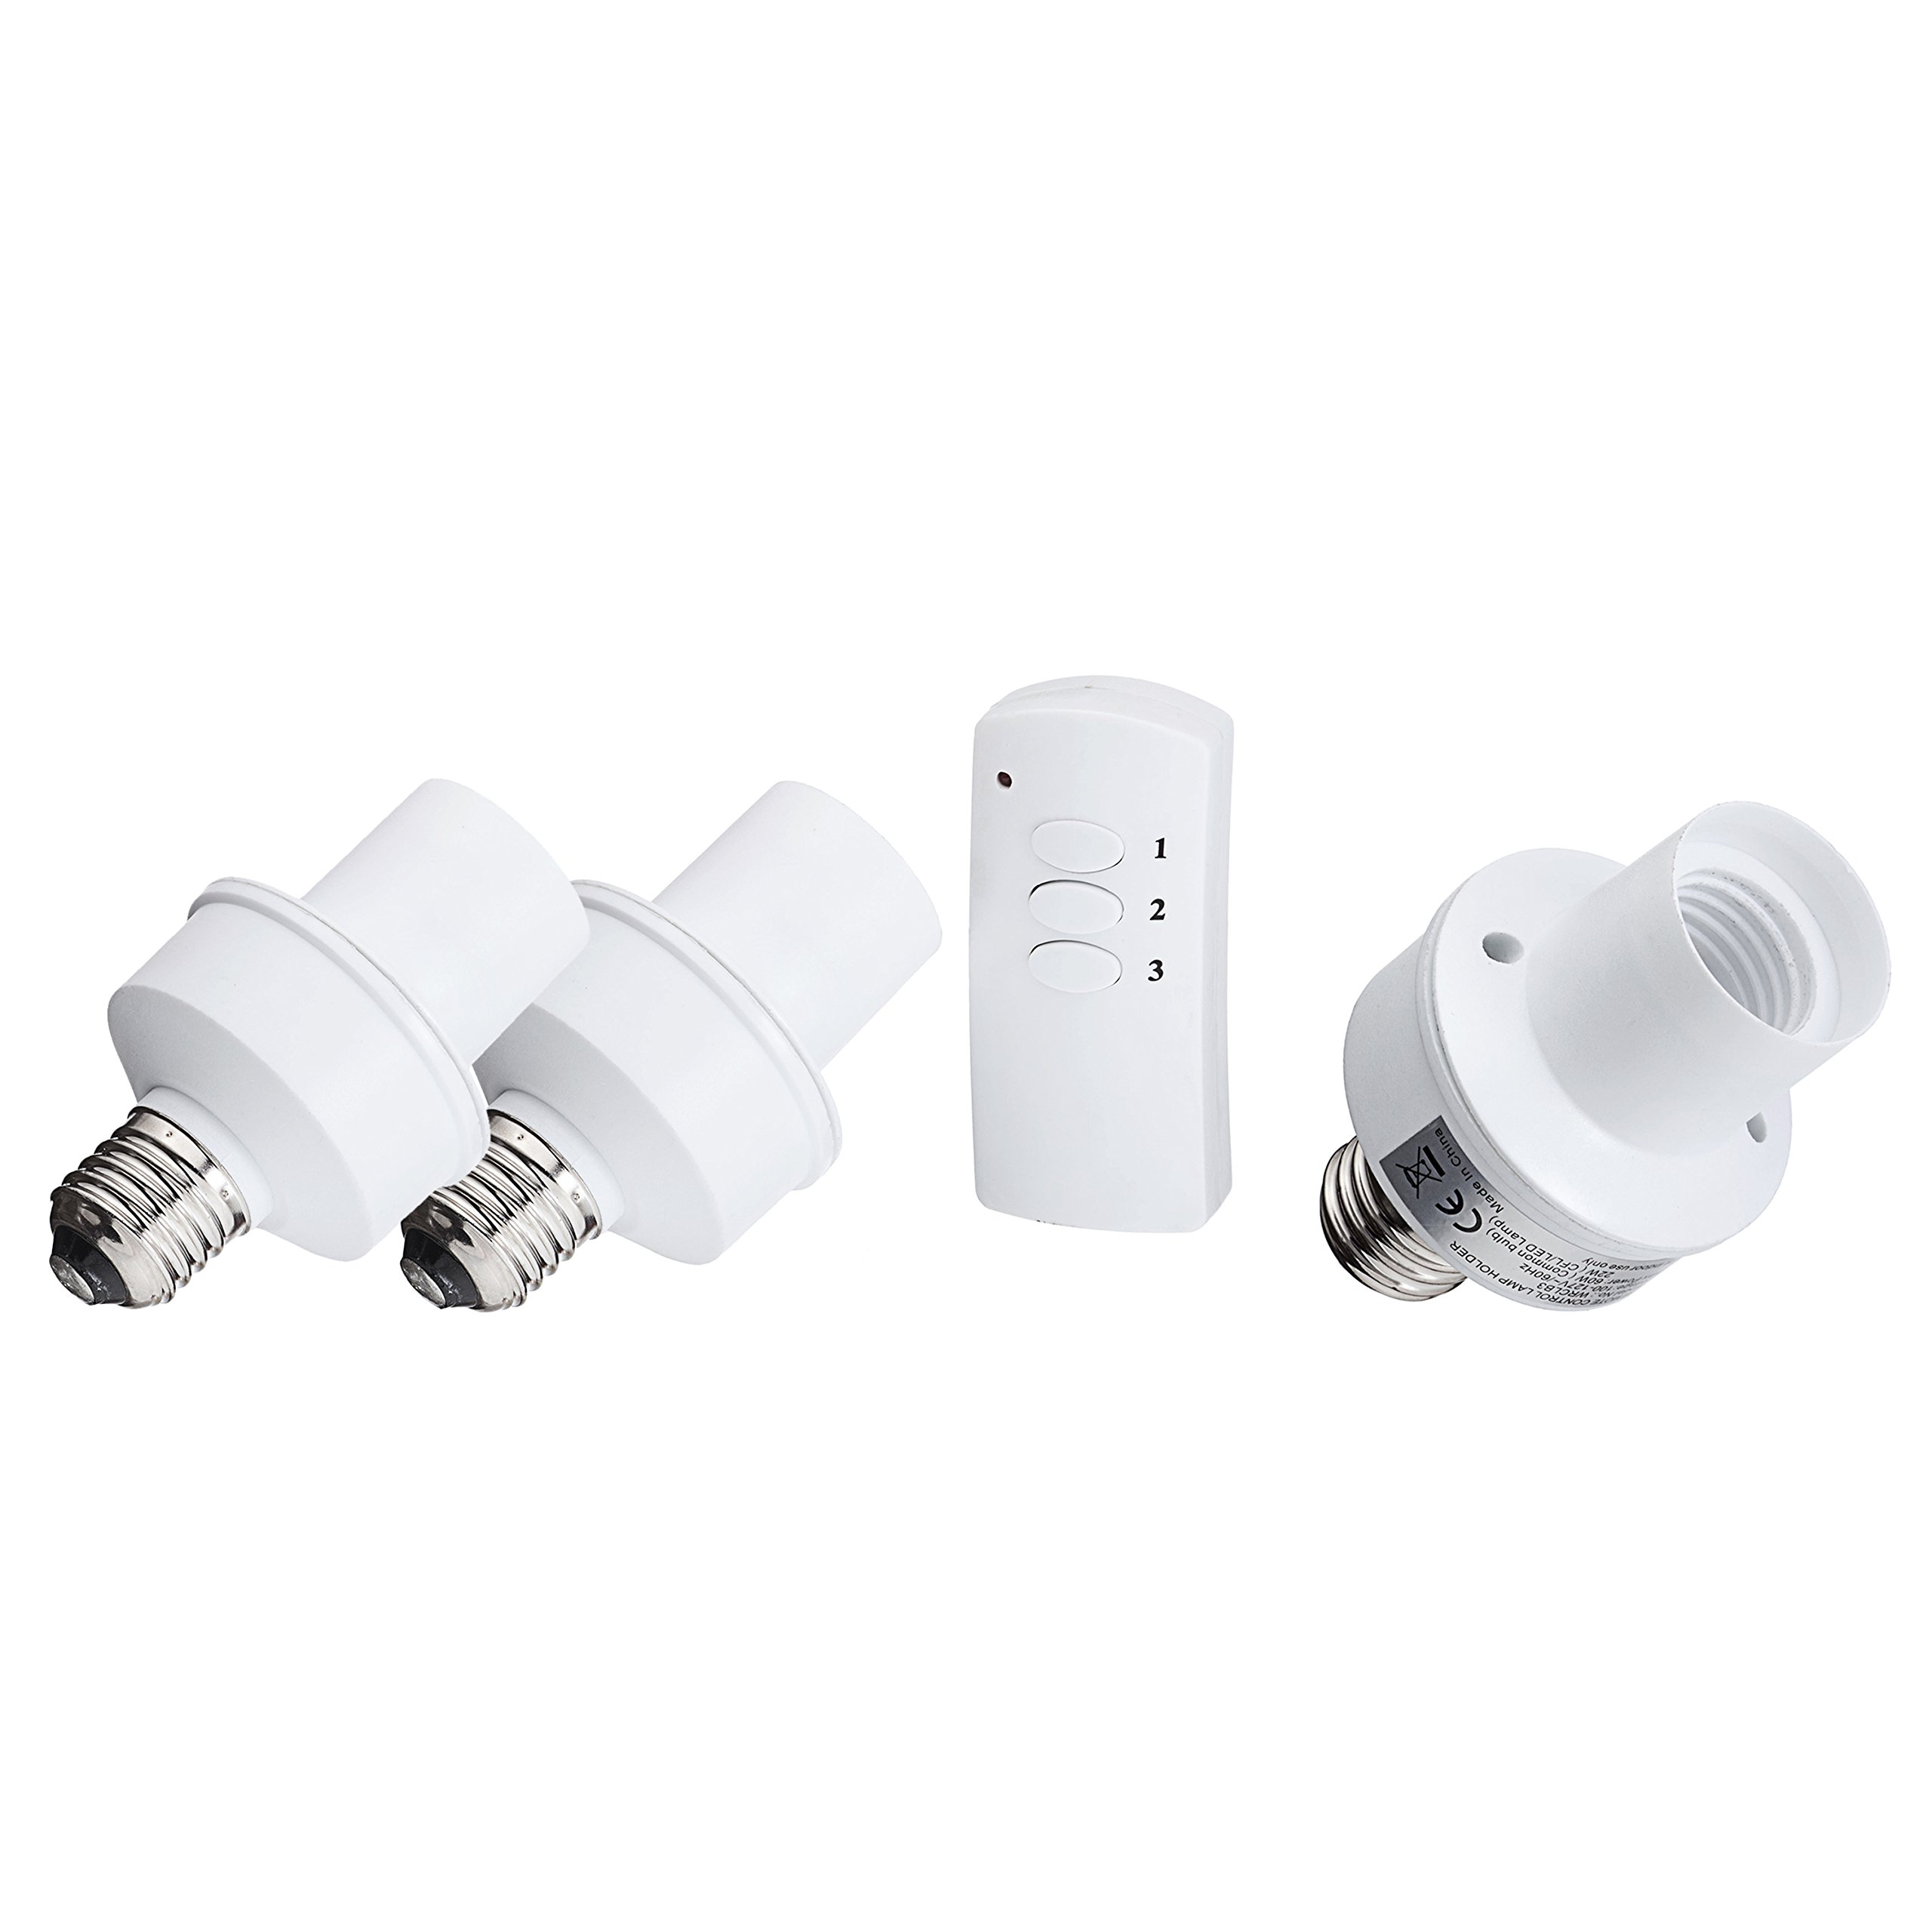 LED Concepts Remote Control Wireless Light Bulb Socket Cap Switch for Lamps Bulbs and Fixtures (Set of 3 Sockets)